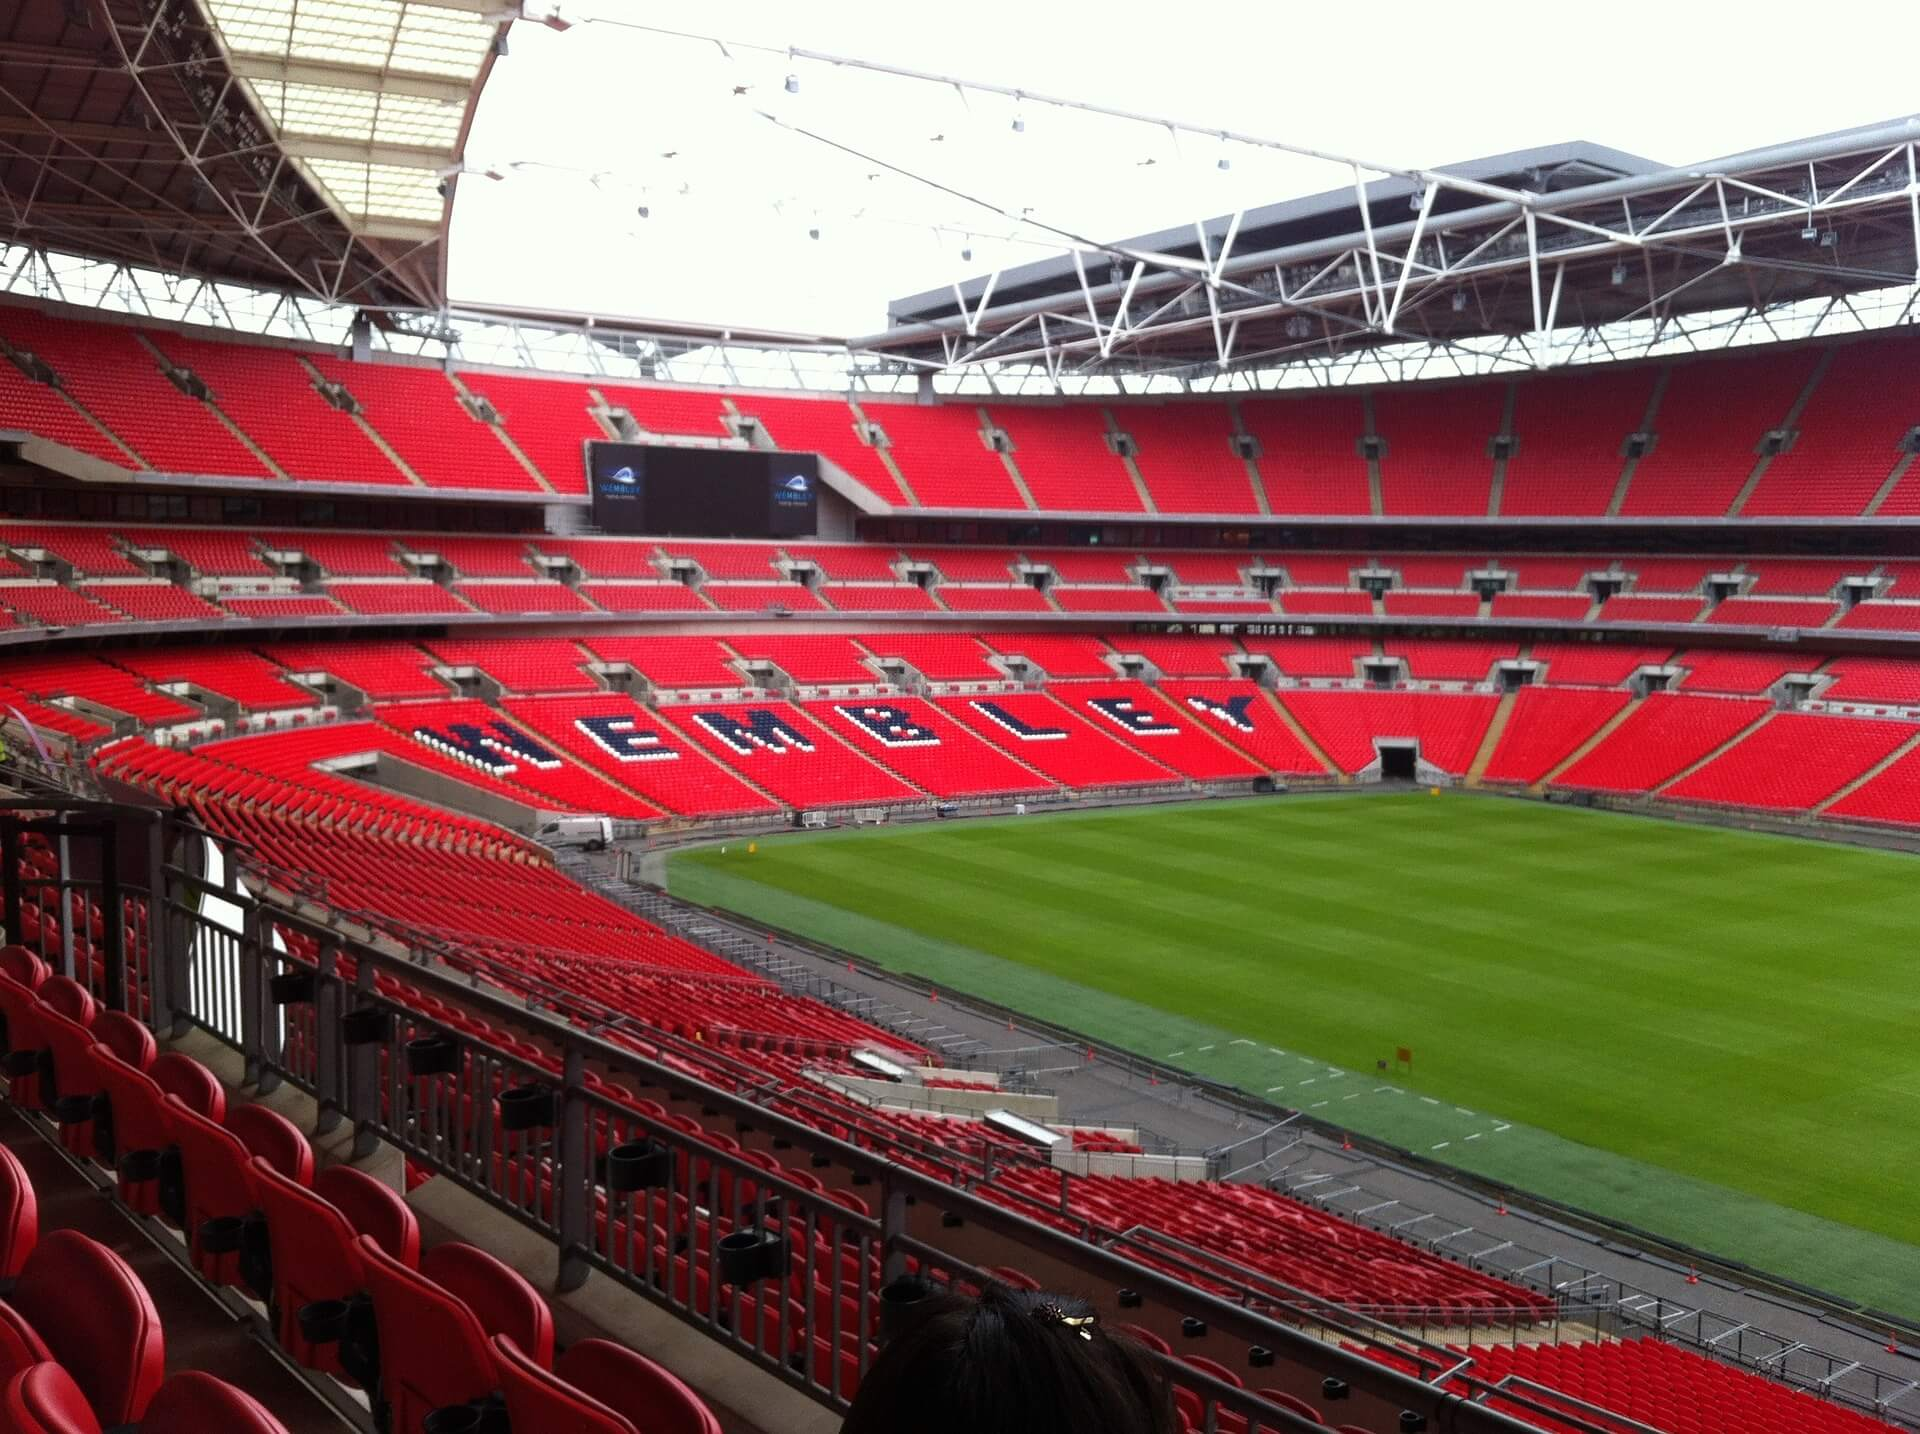 Wembley Stadium Tour - Stadium Tours in London